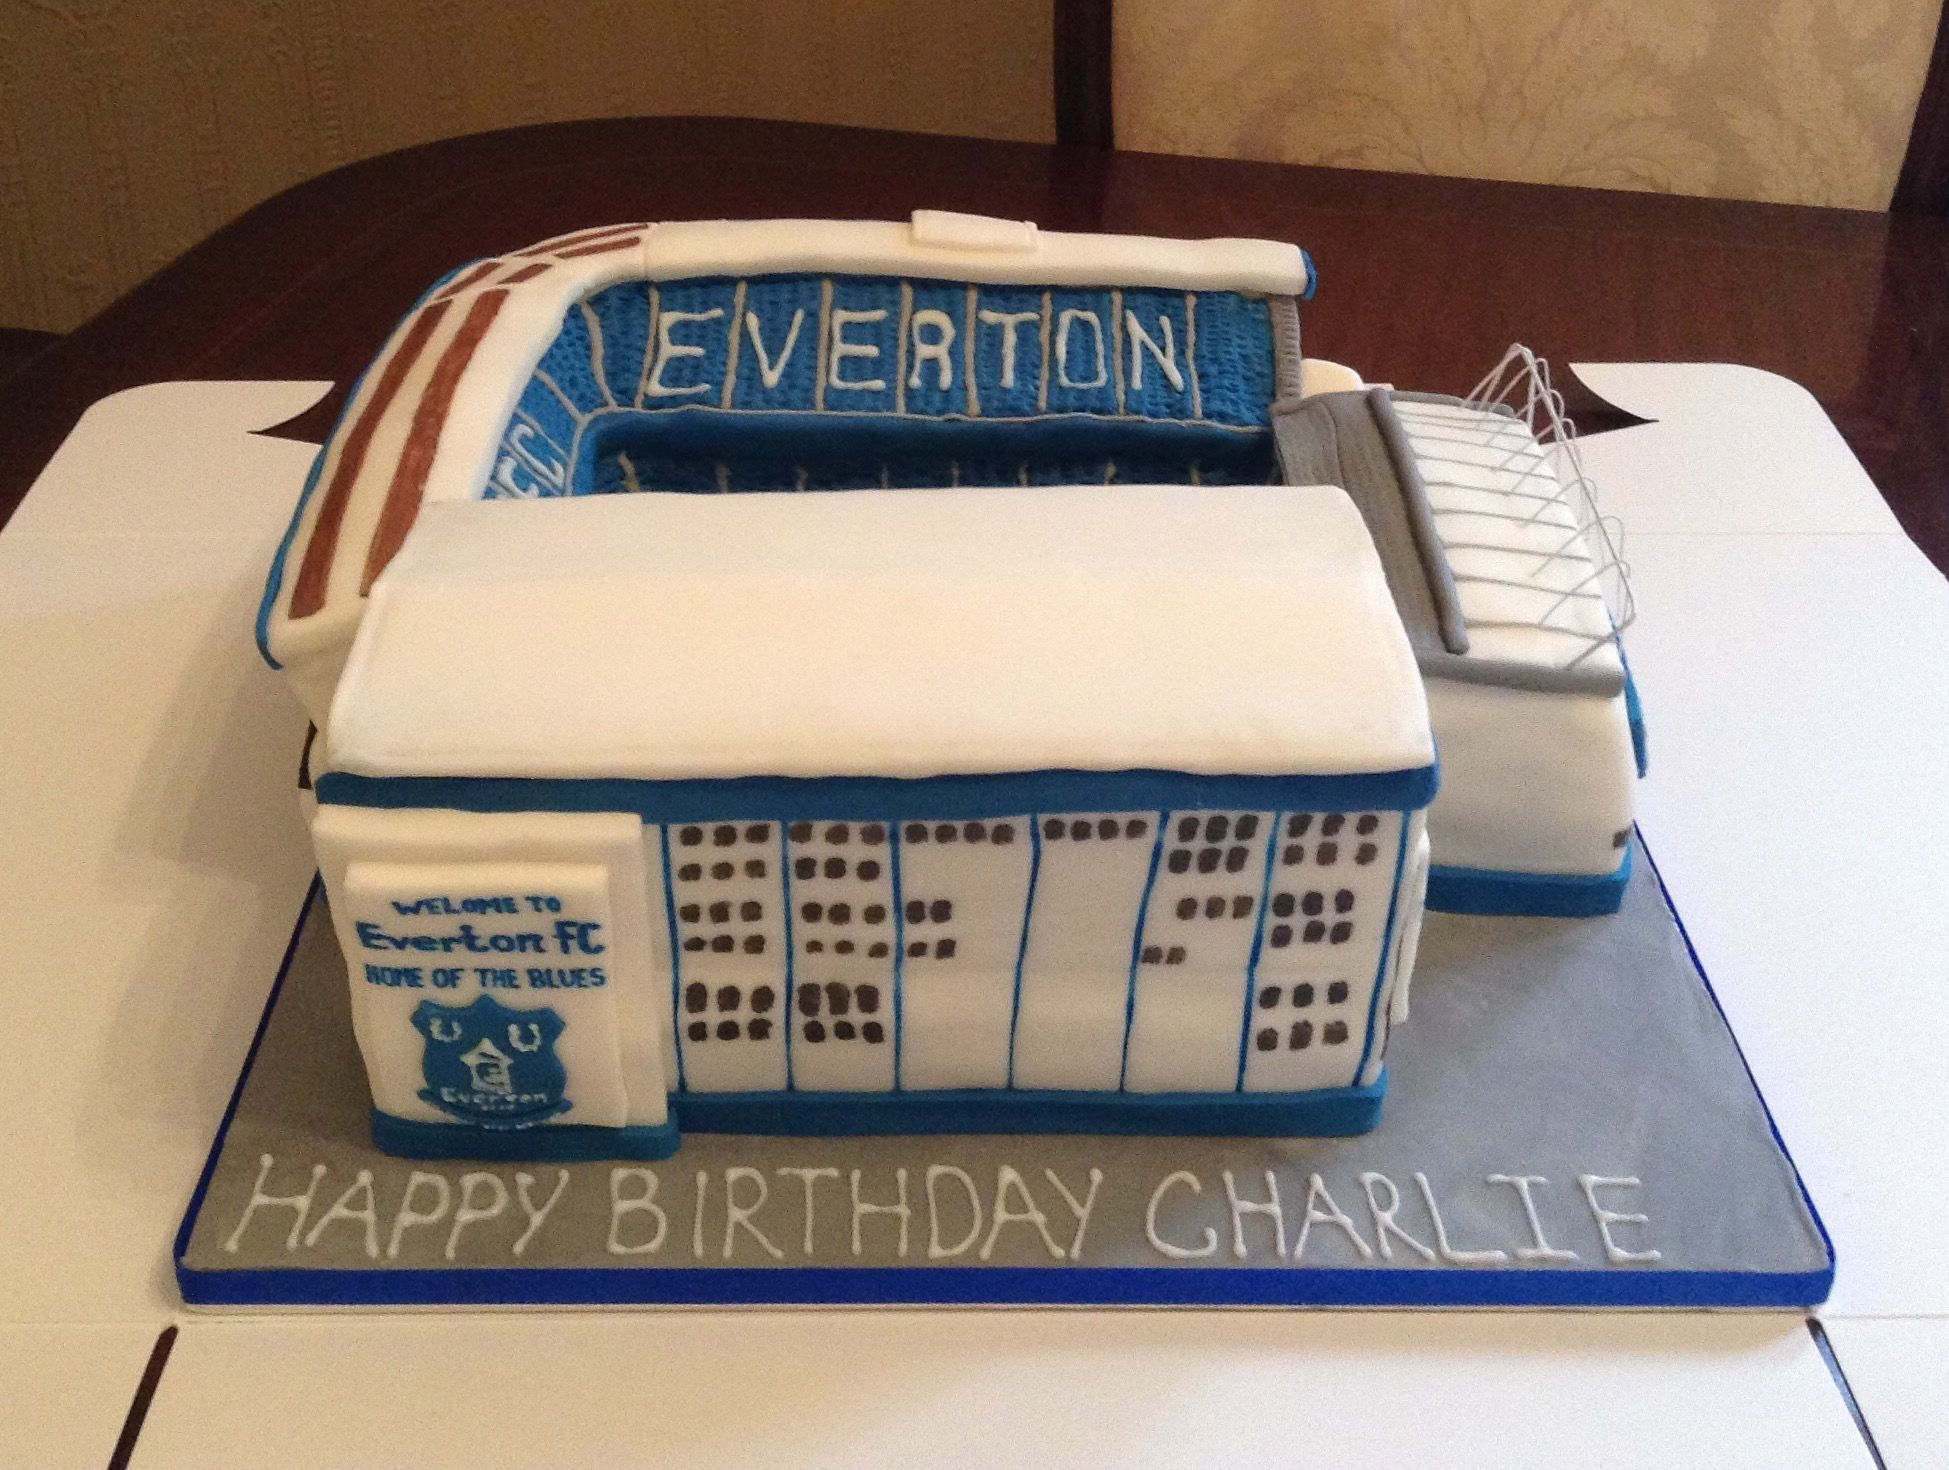 Goodison Park Everton Football Club Cake From Cakes By Nicky